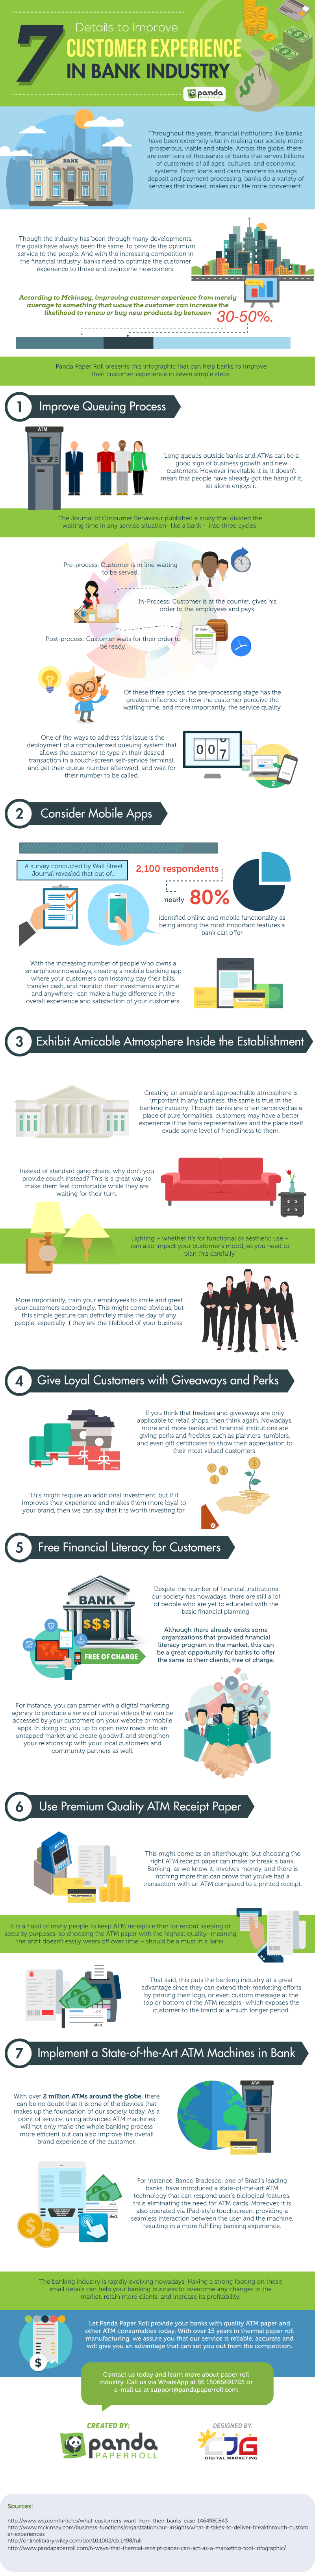 7 Details to Improve Customer Experience in Bank Industry